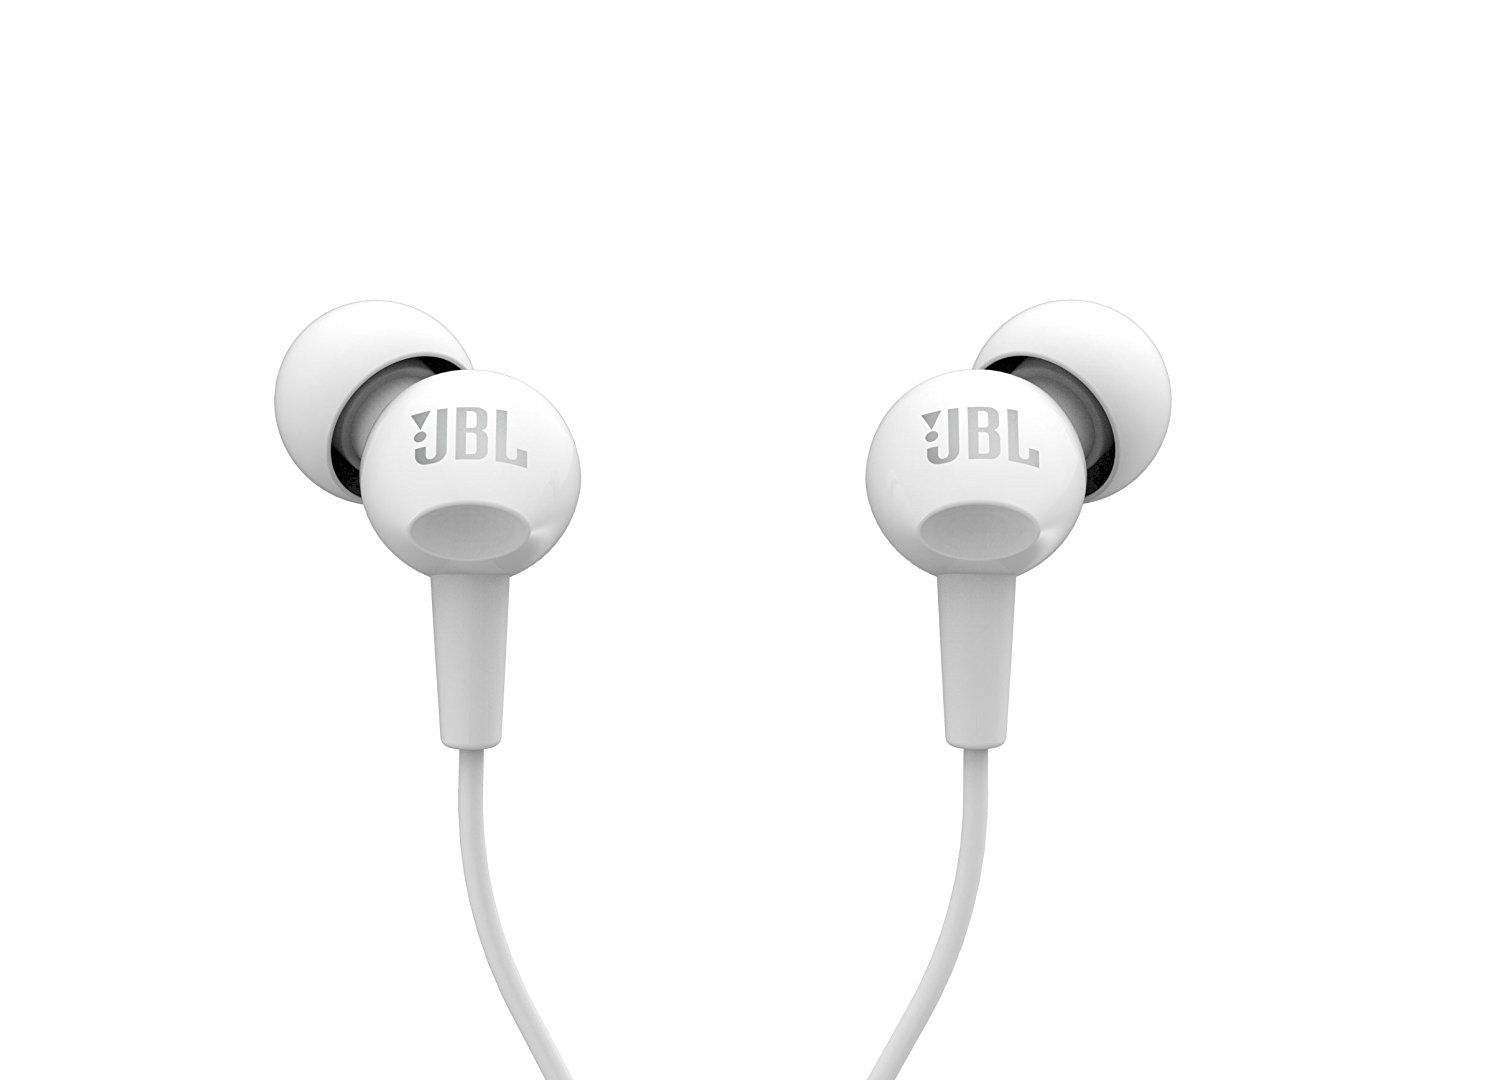 Buy Jbl C100si In Ear Headphones With Mic White Online At Low Prices In India Amazon In Best Smartphone Best Headphones Headphones